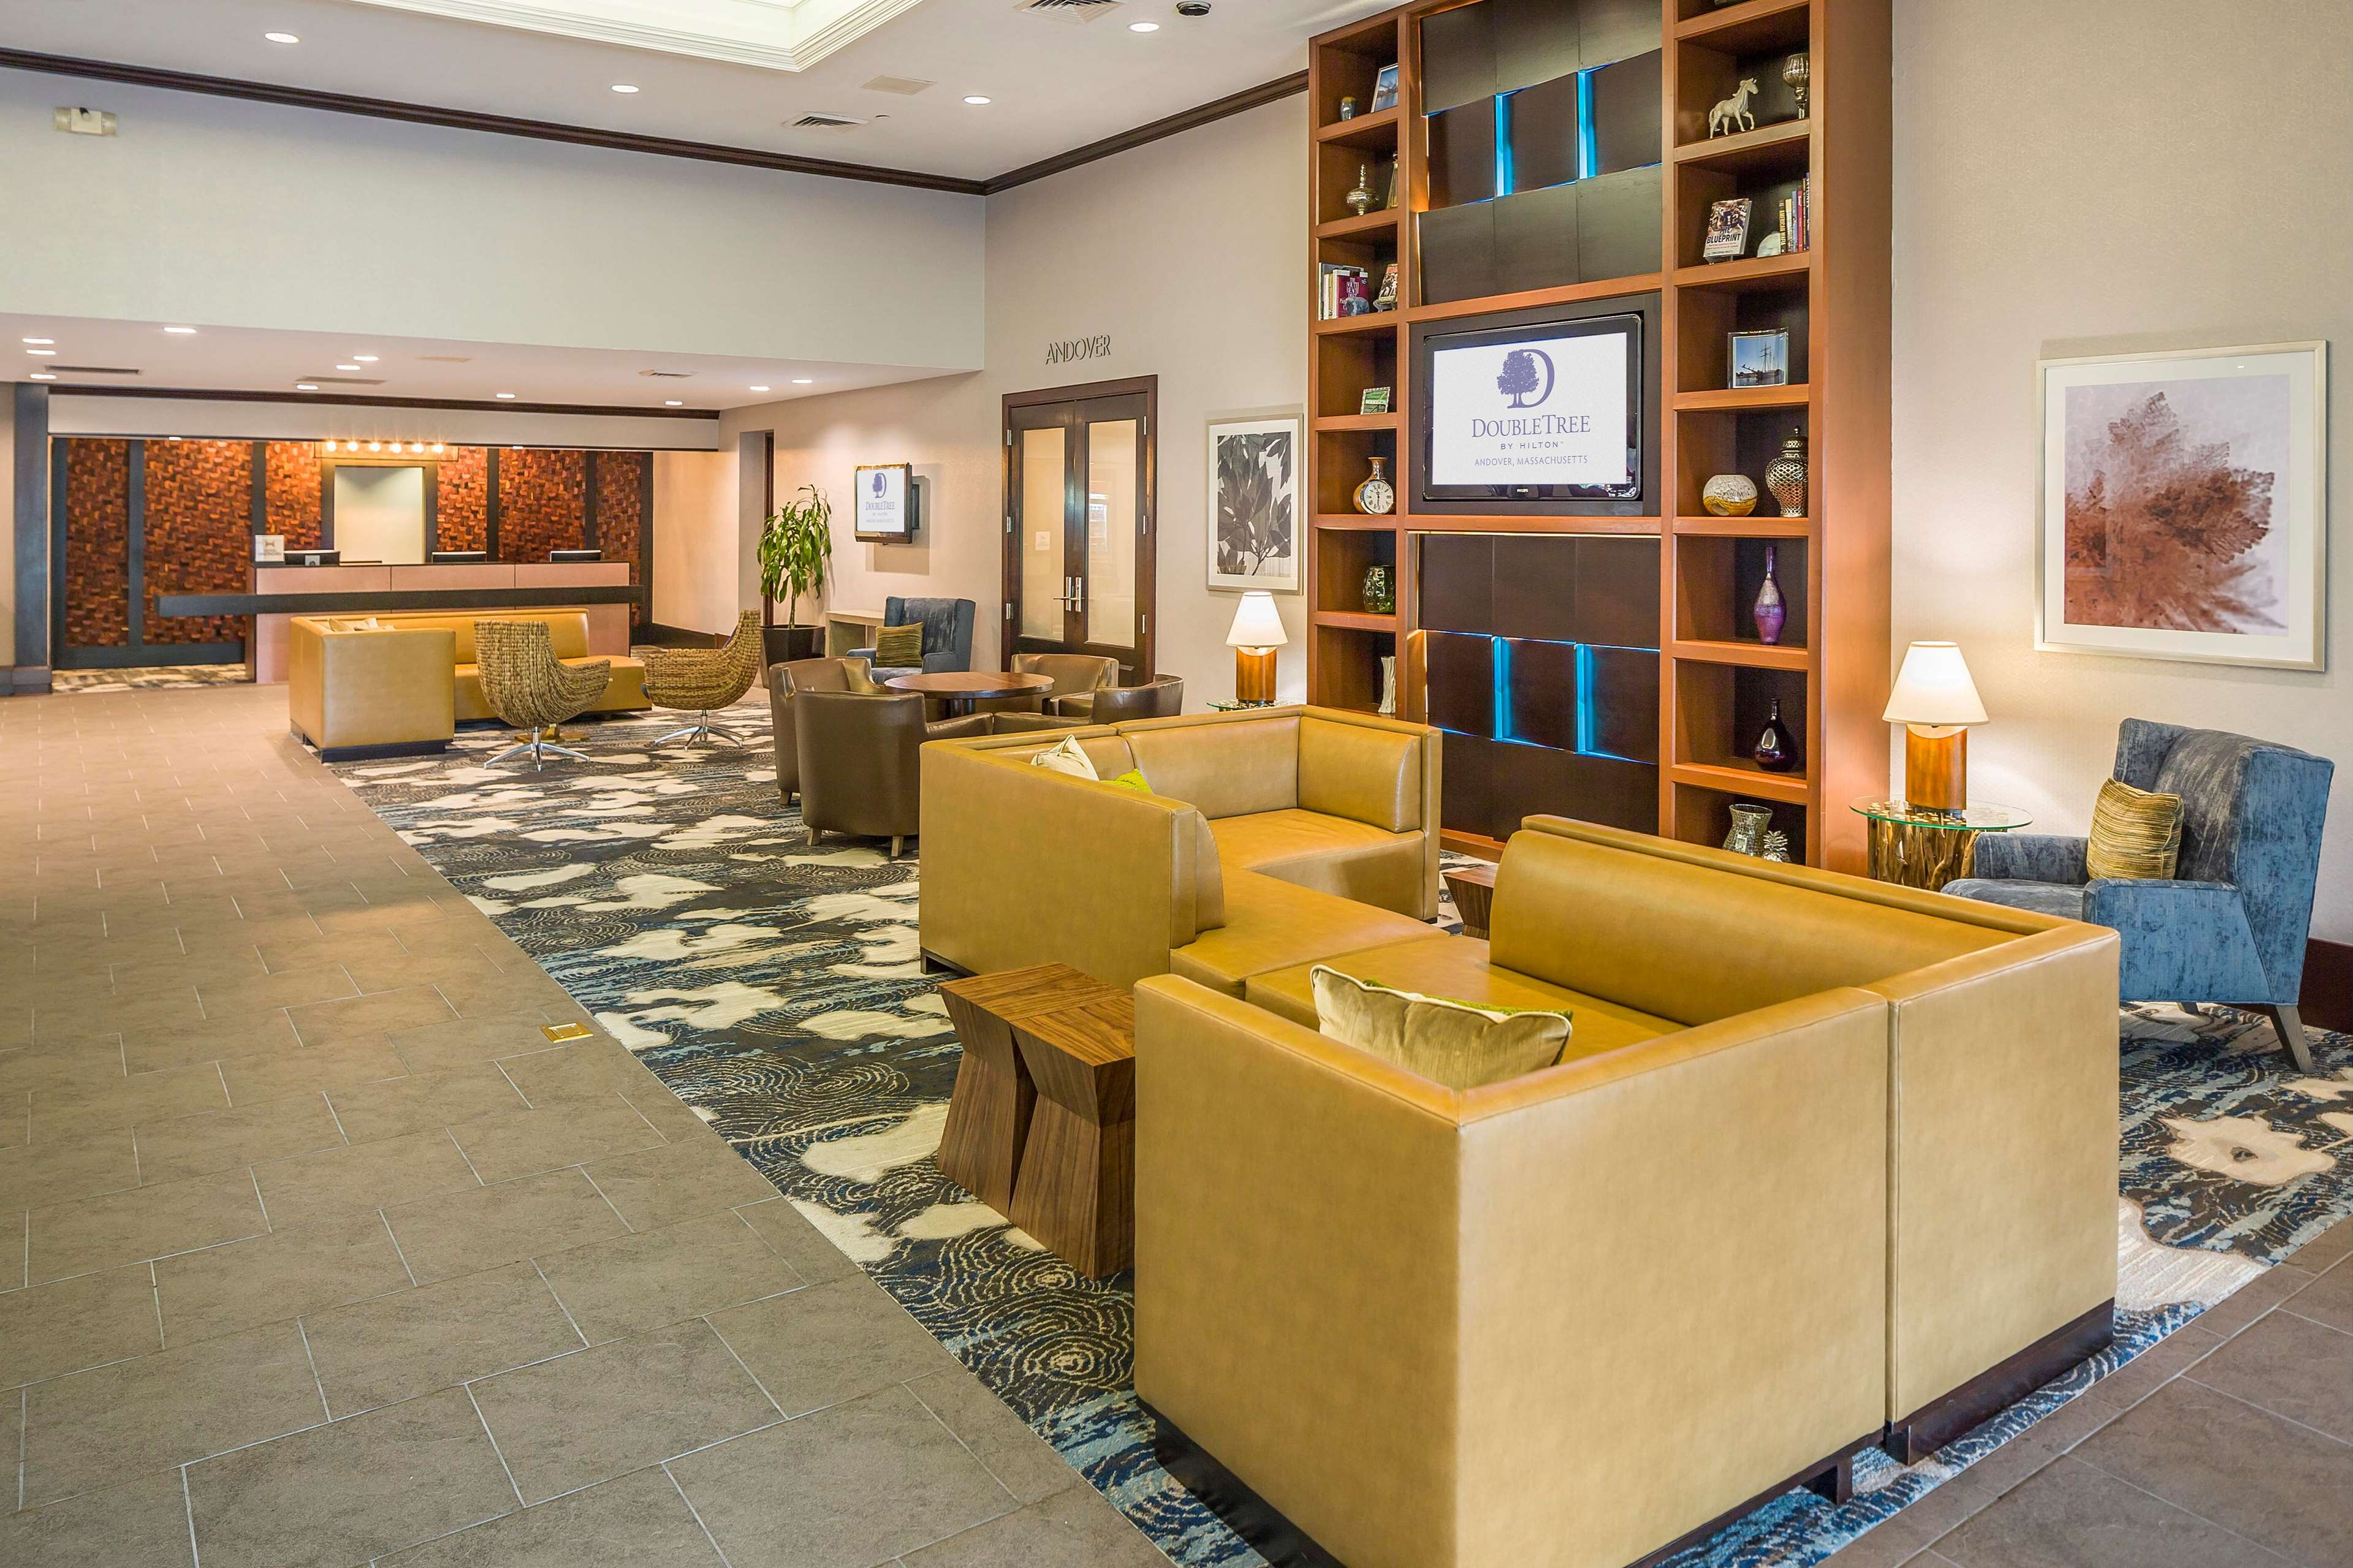 DoubleTree by Hilton Boston - Andover image 45